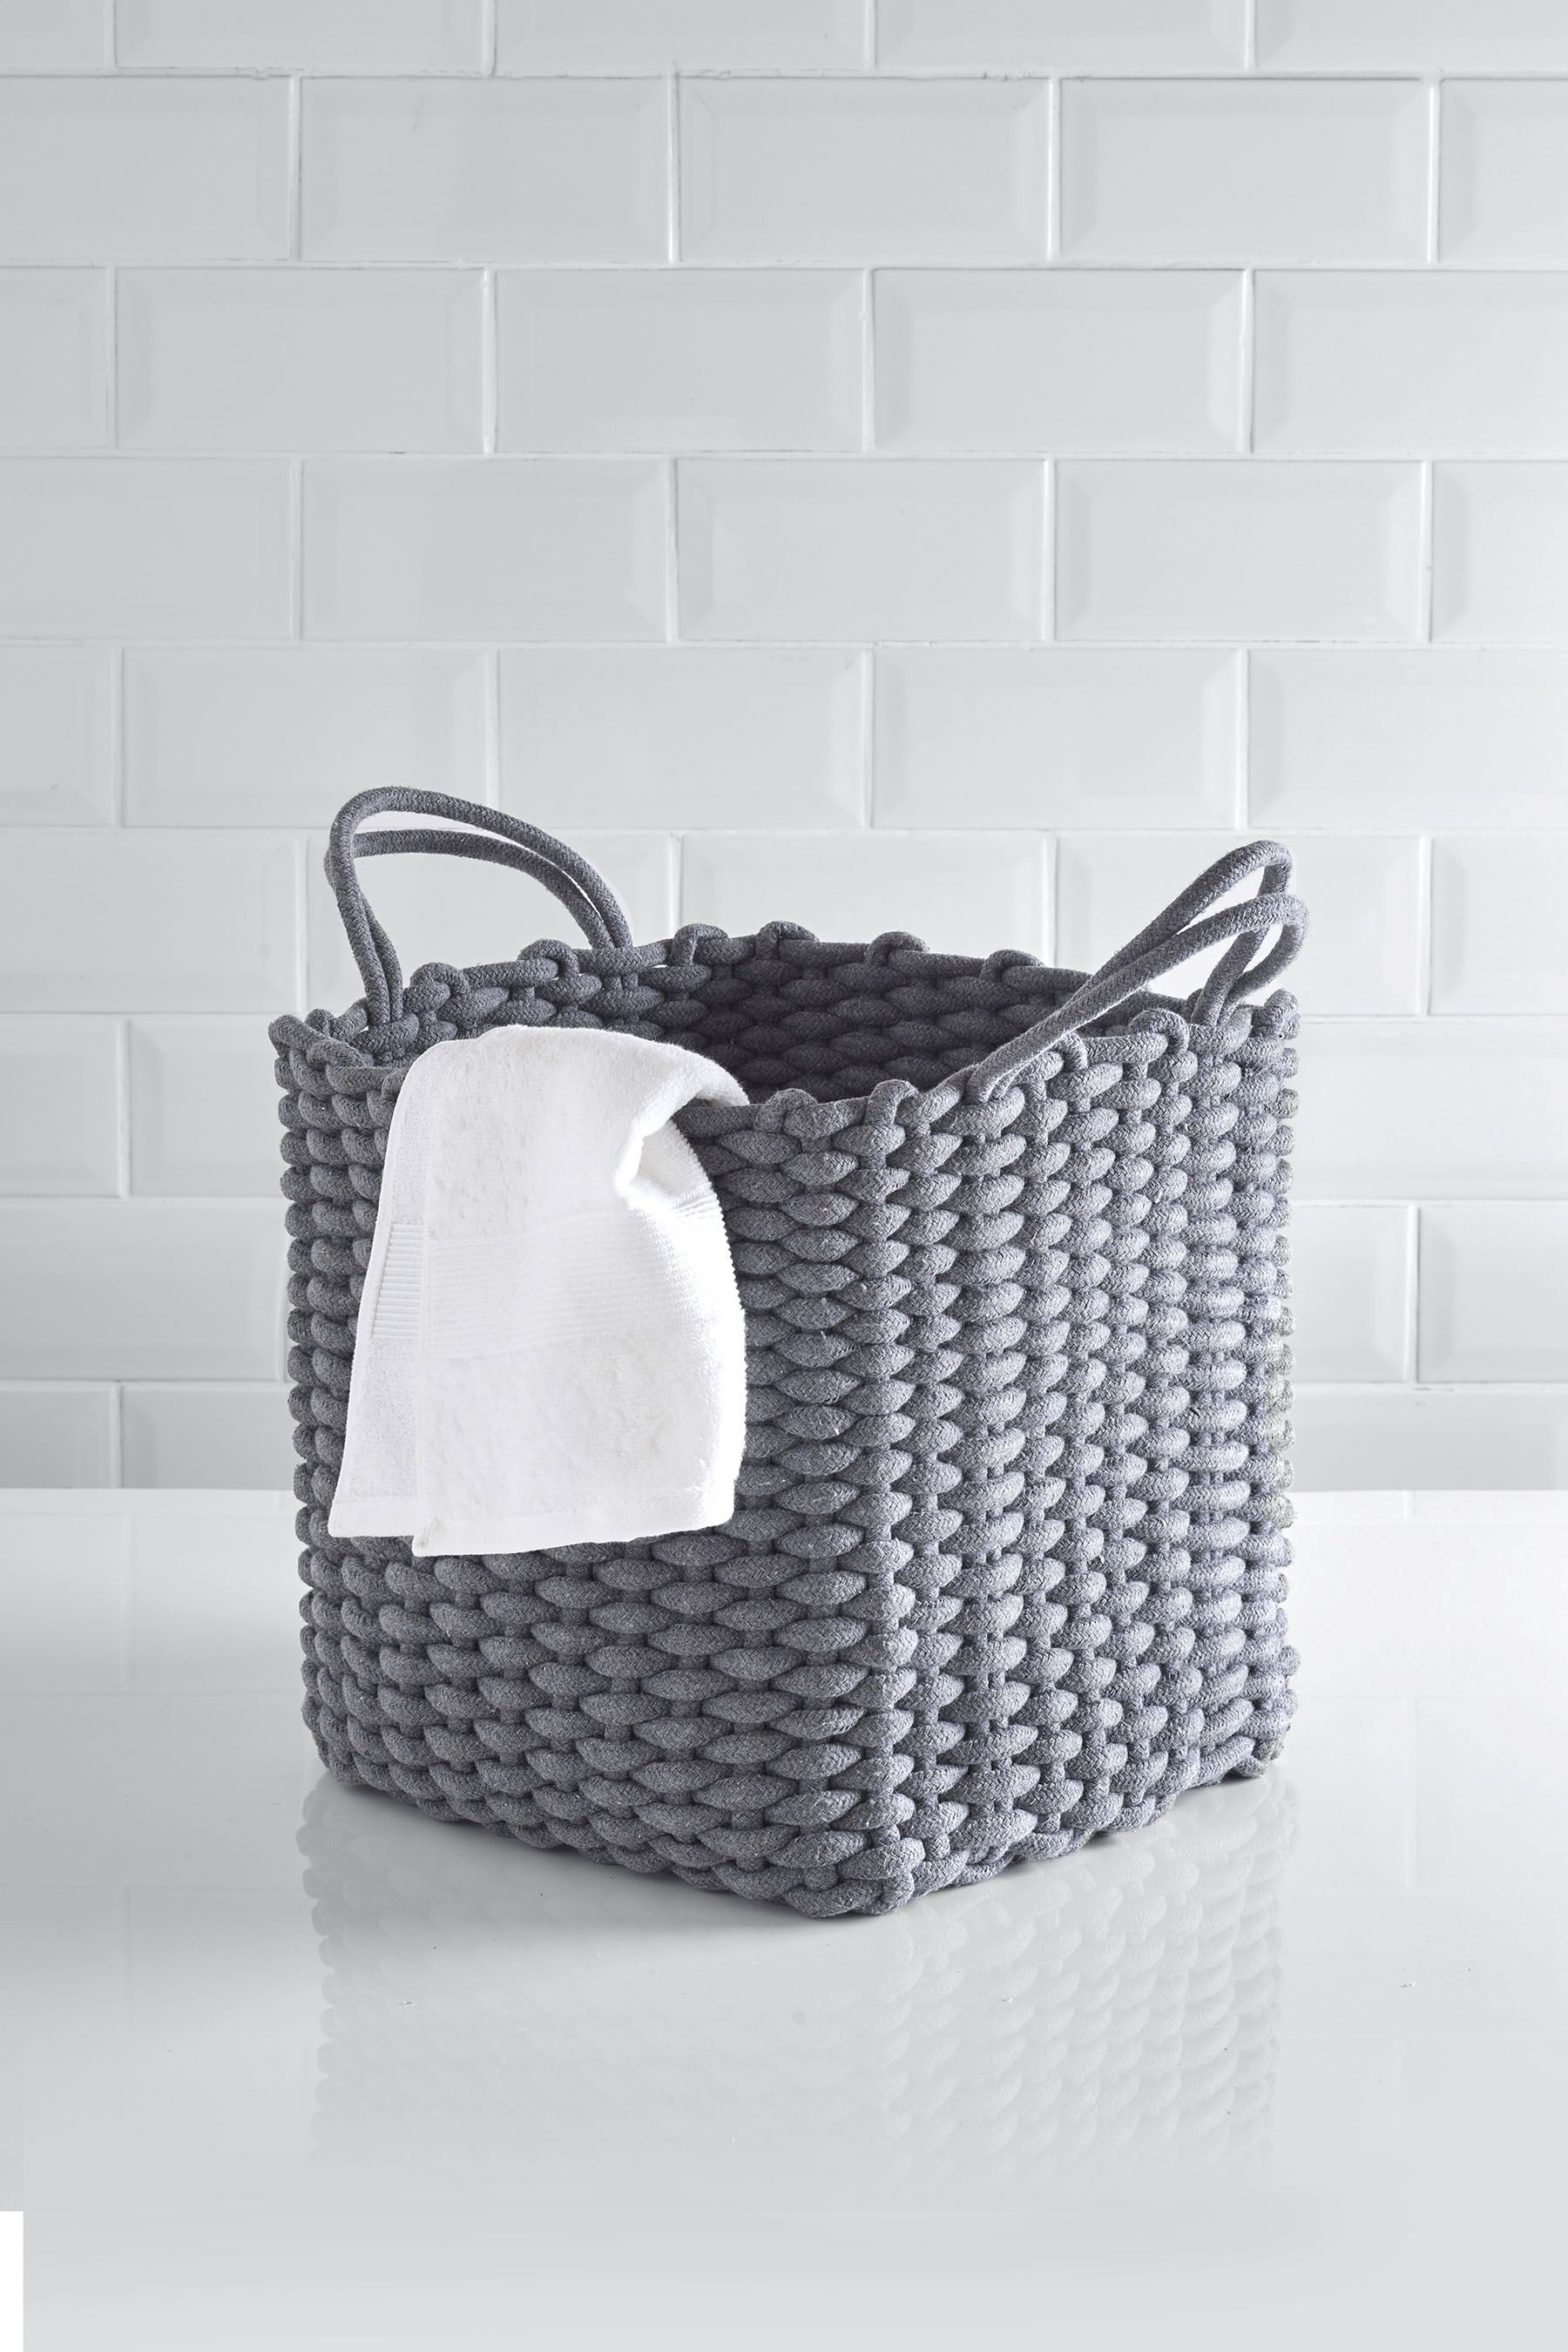 Next Rope Storage Basket Grey Diy And Crafts In 2019 within measurements 1800 X 2700